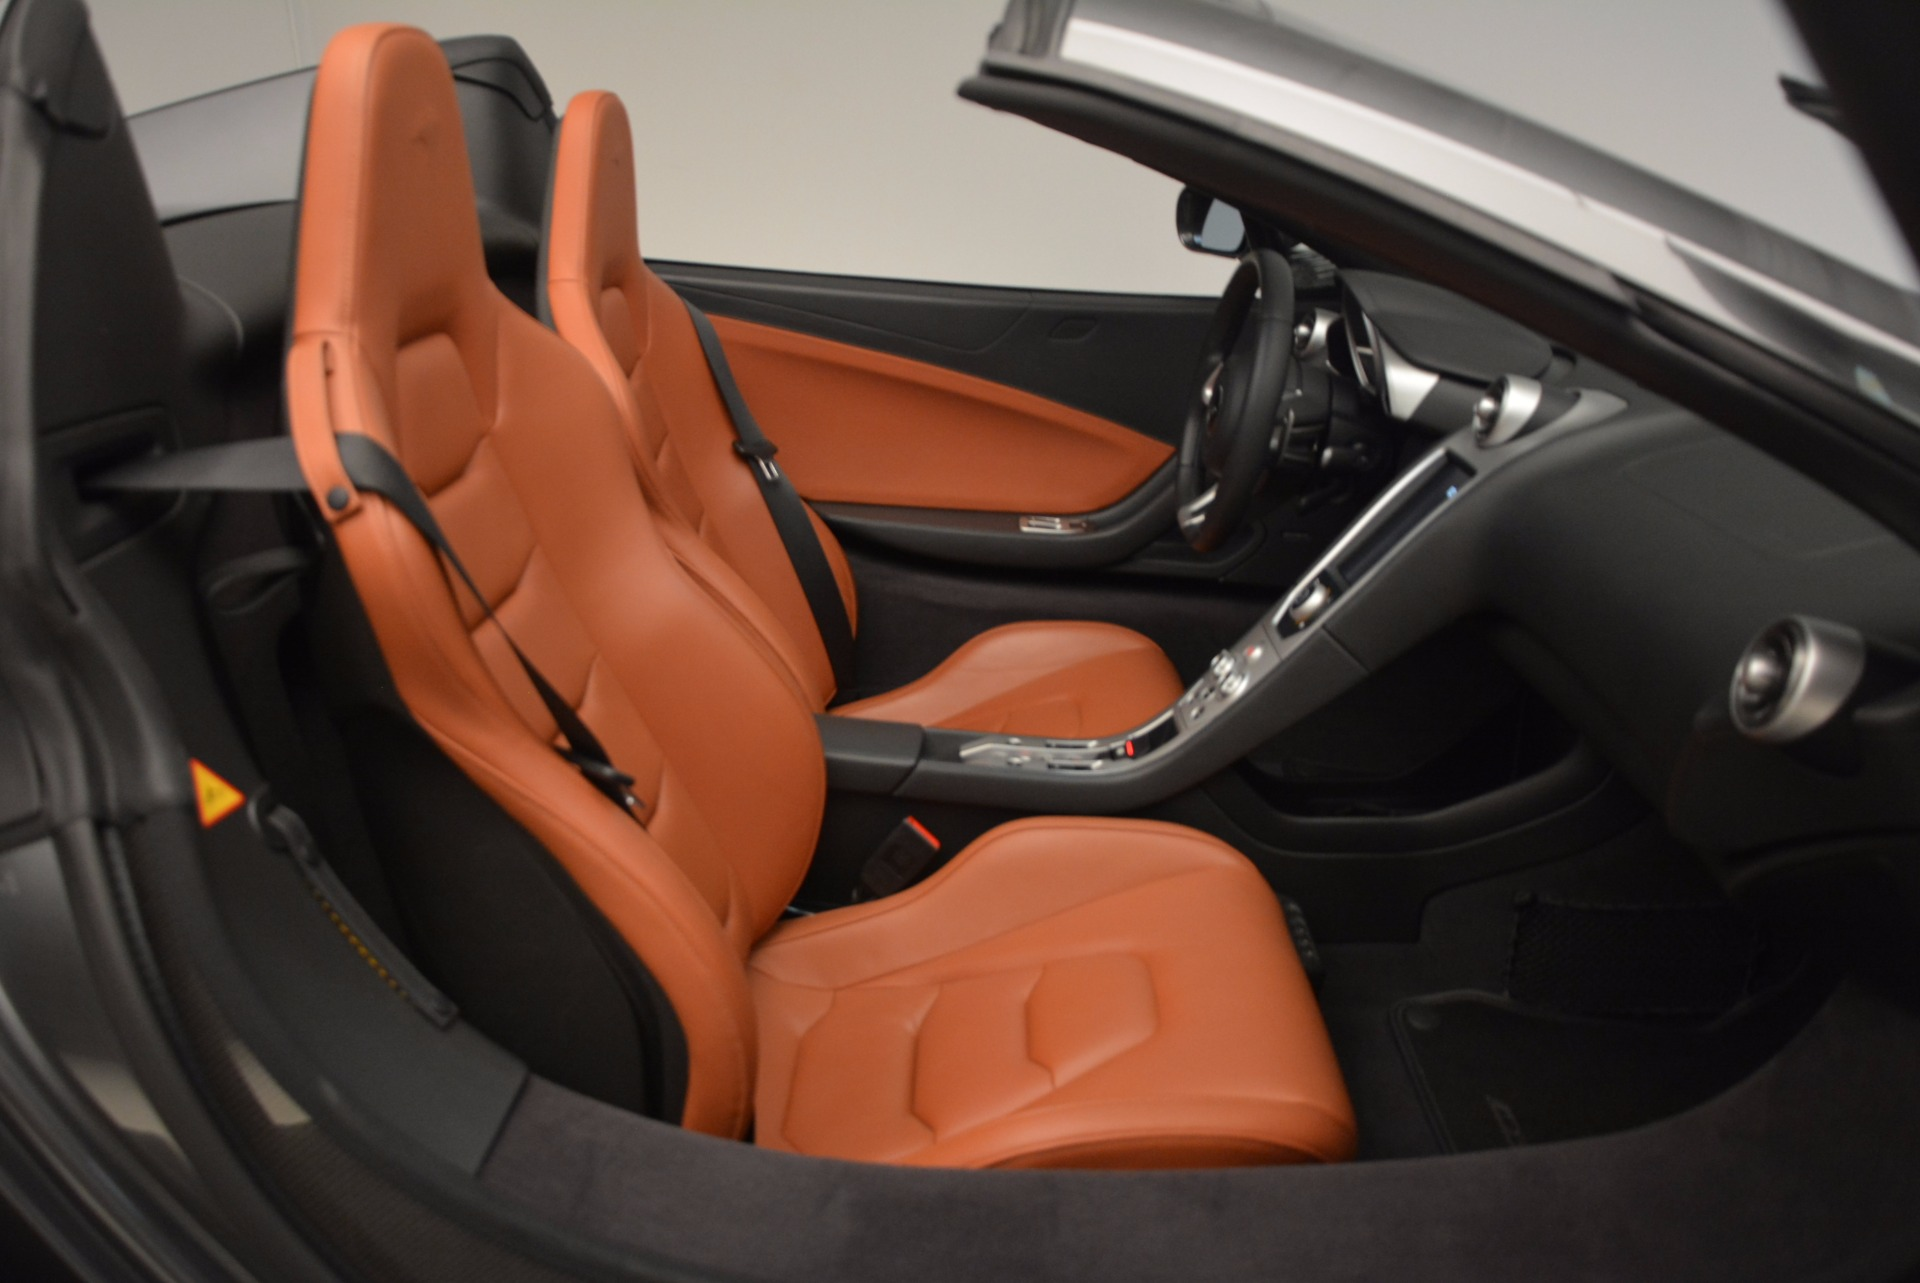 Used 2014 McLaren MP4-12C Convertible For Sale In Greenwich, CT 1510_p34